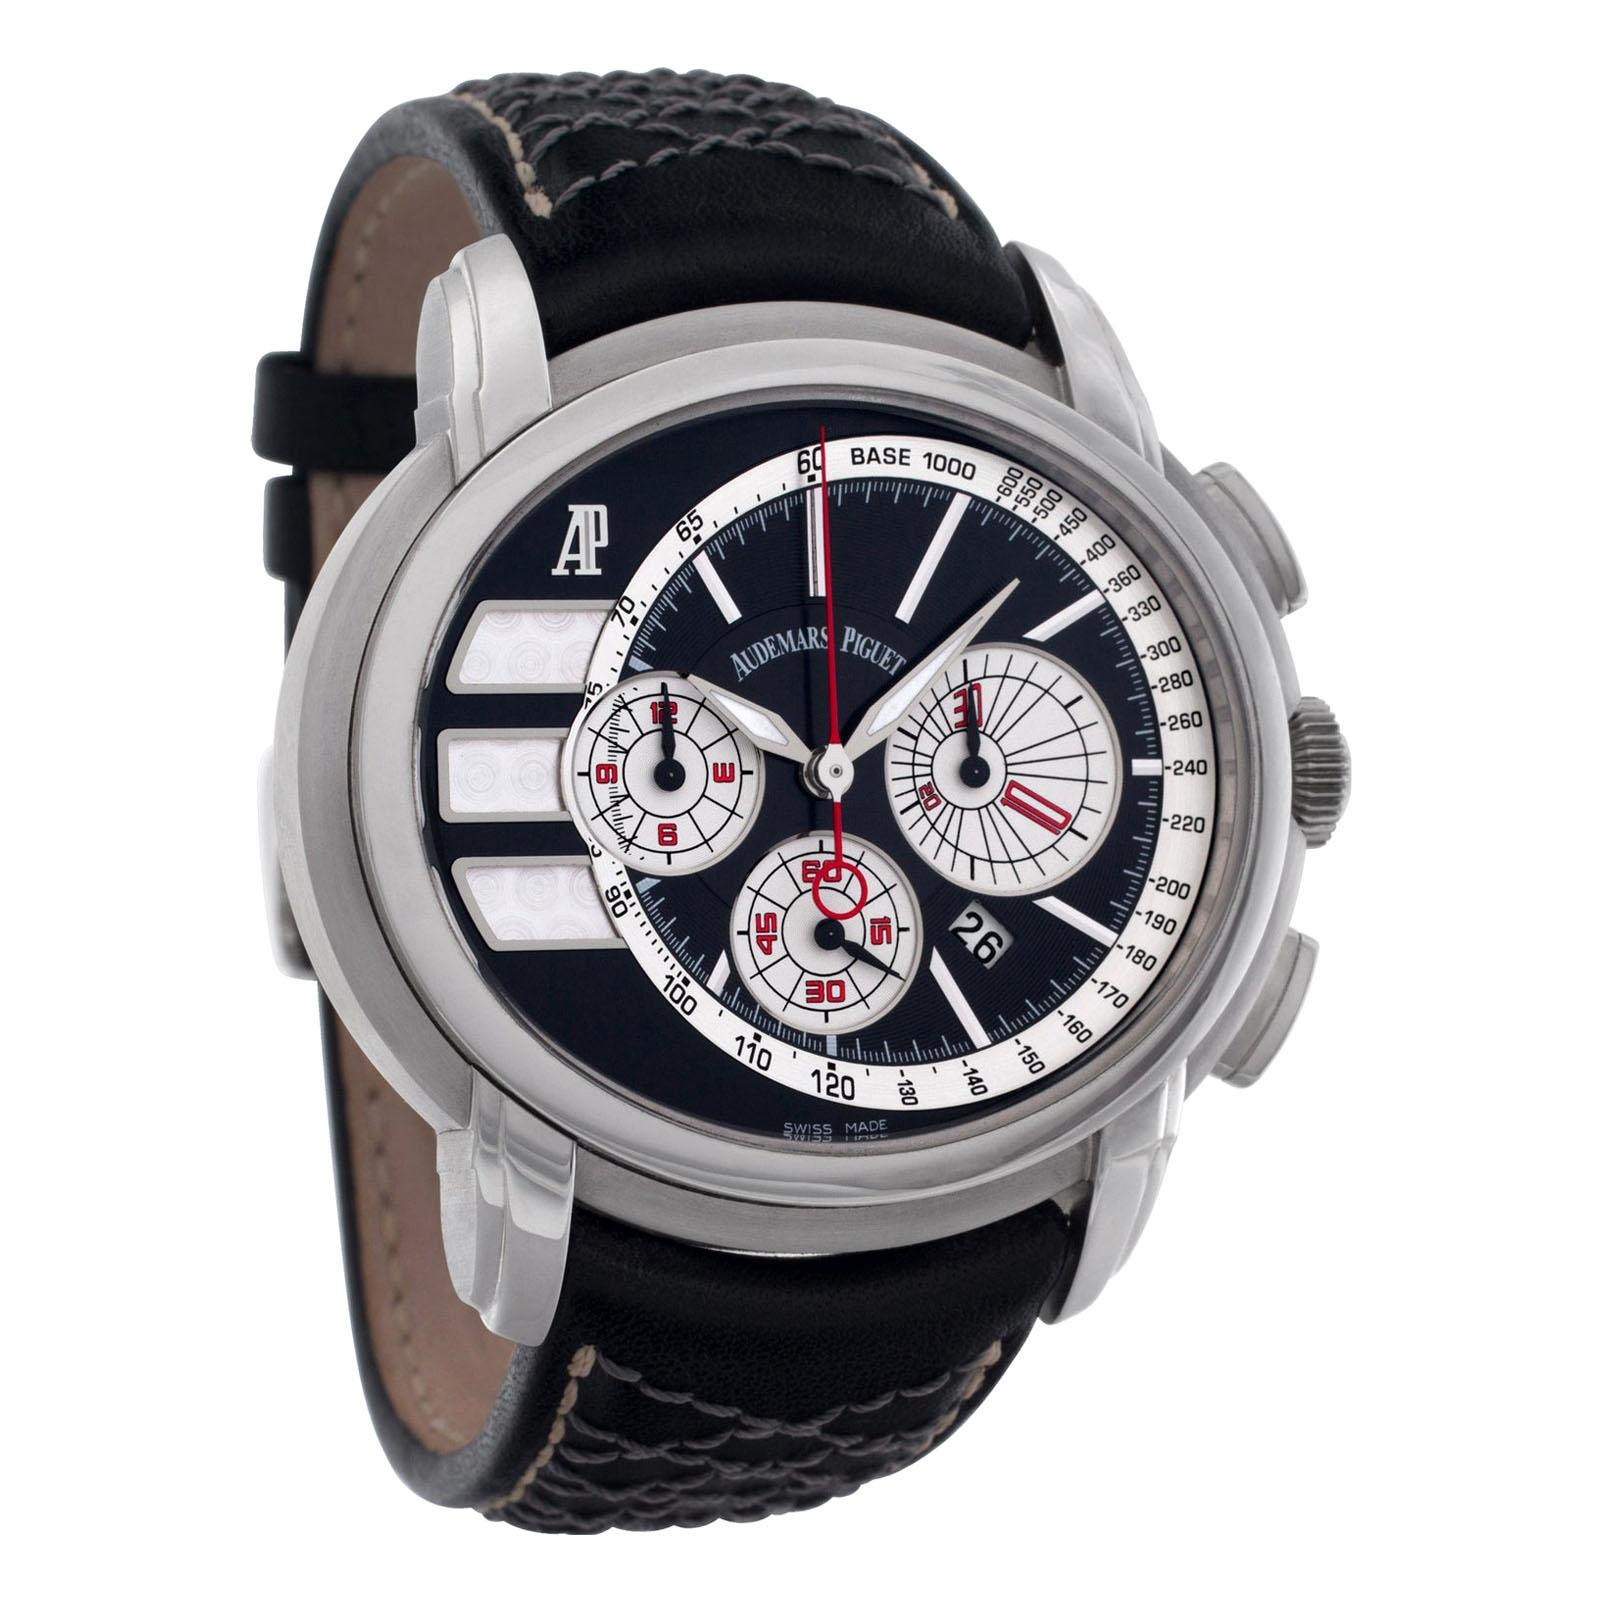 Audemars Piguet Millenary Tour Chrono Watch 26142ST.OO.D001VE.01